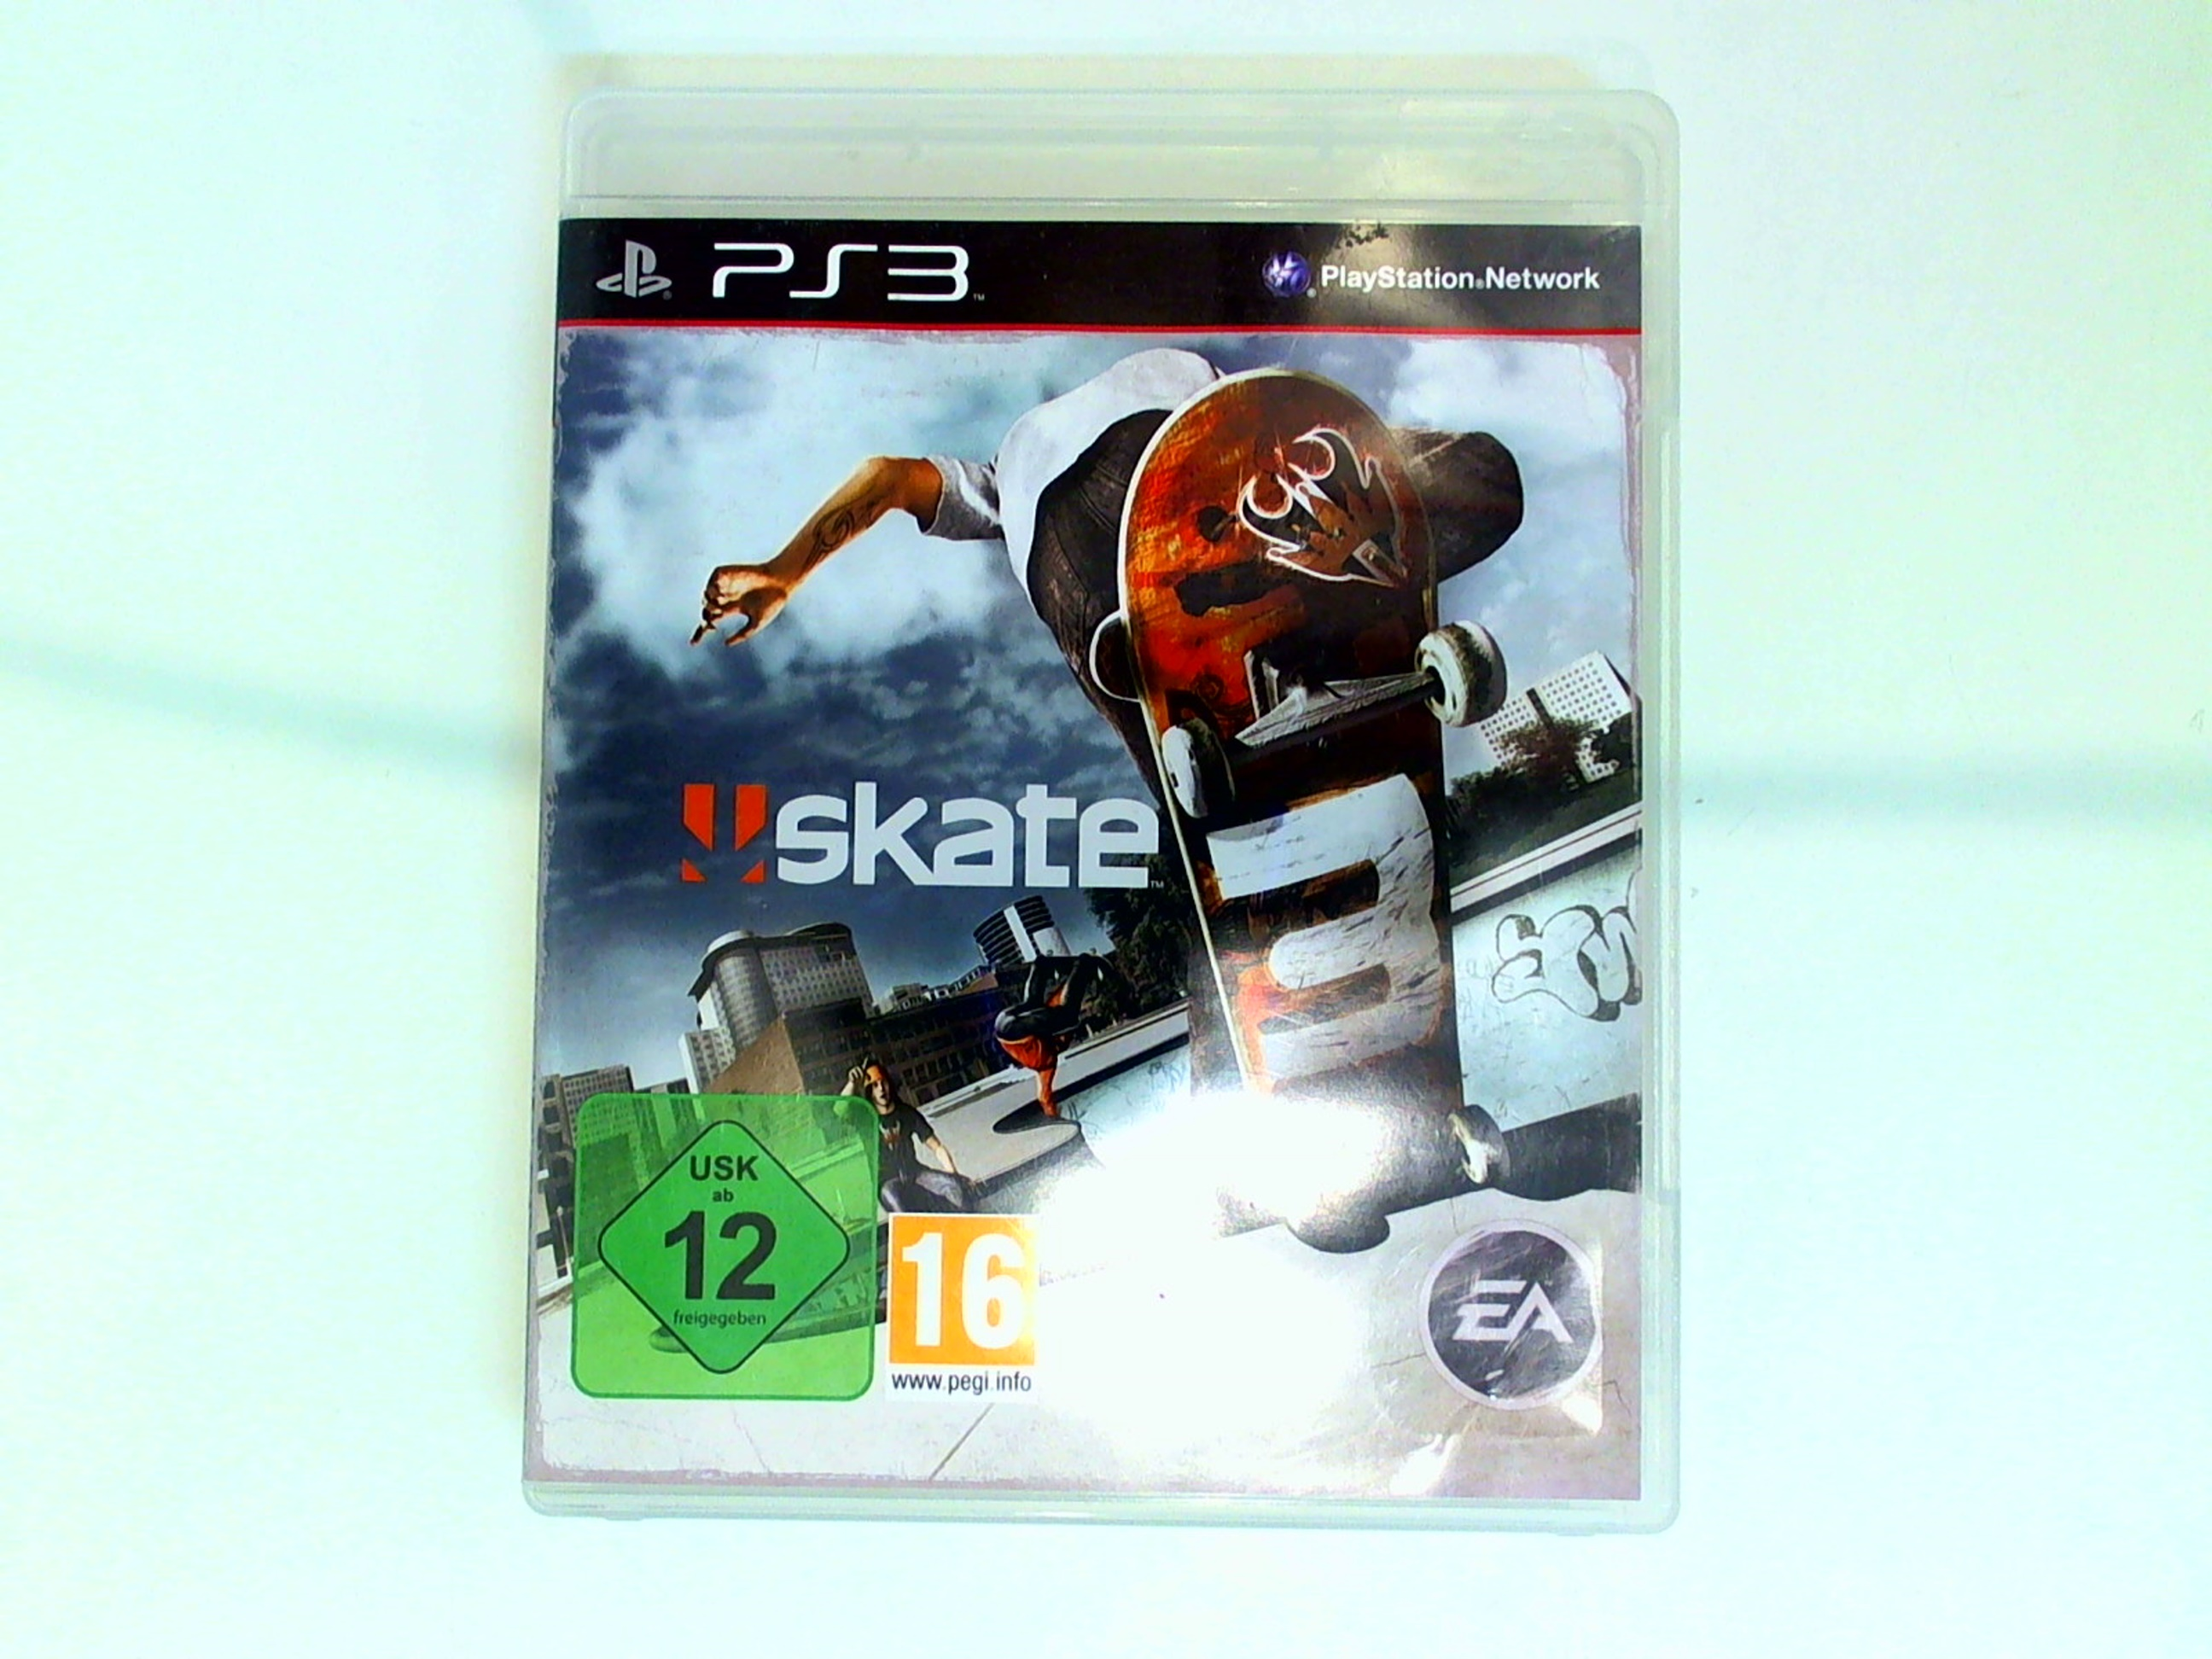 sony playstation 3 spiel skate 3 usk 12 konsolenspiele konsolen kameras an und verkauf. Black Bedroom Furniture Sets. Home Design Ideas